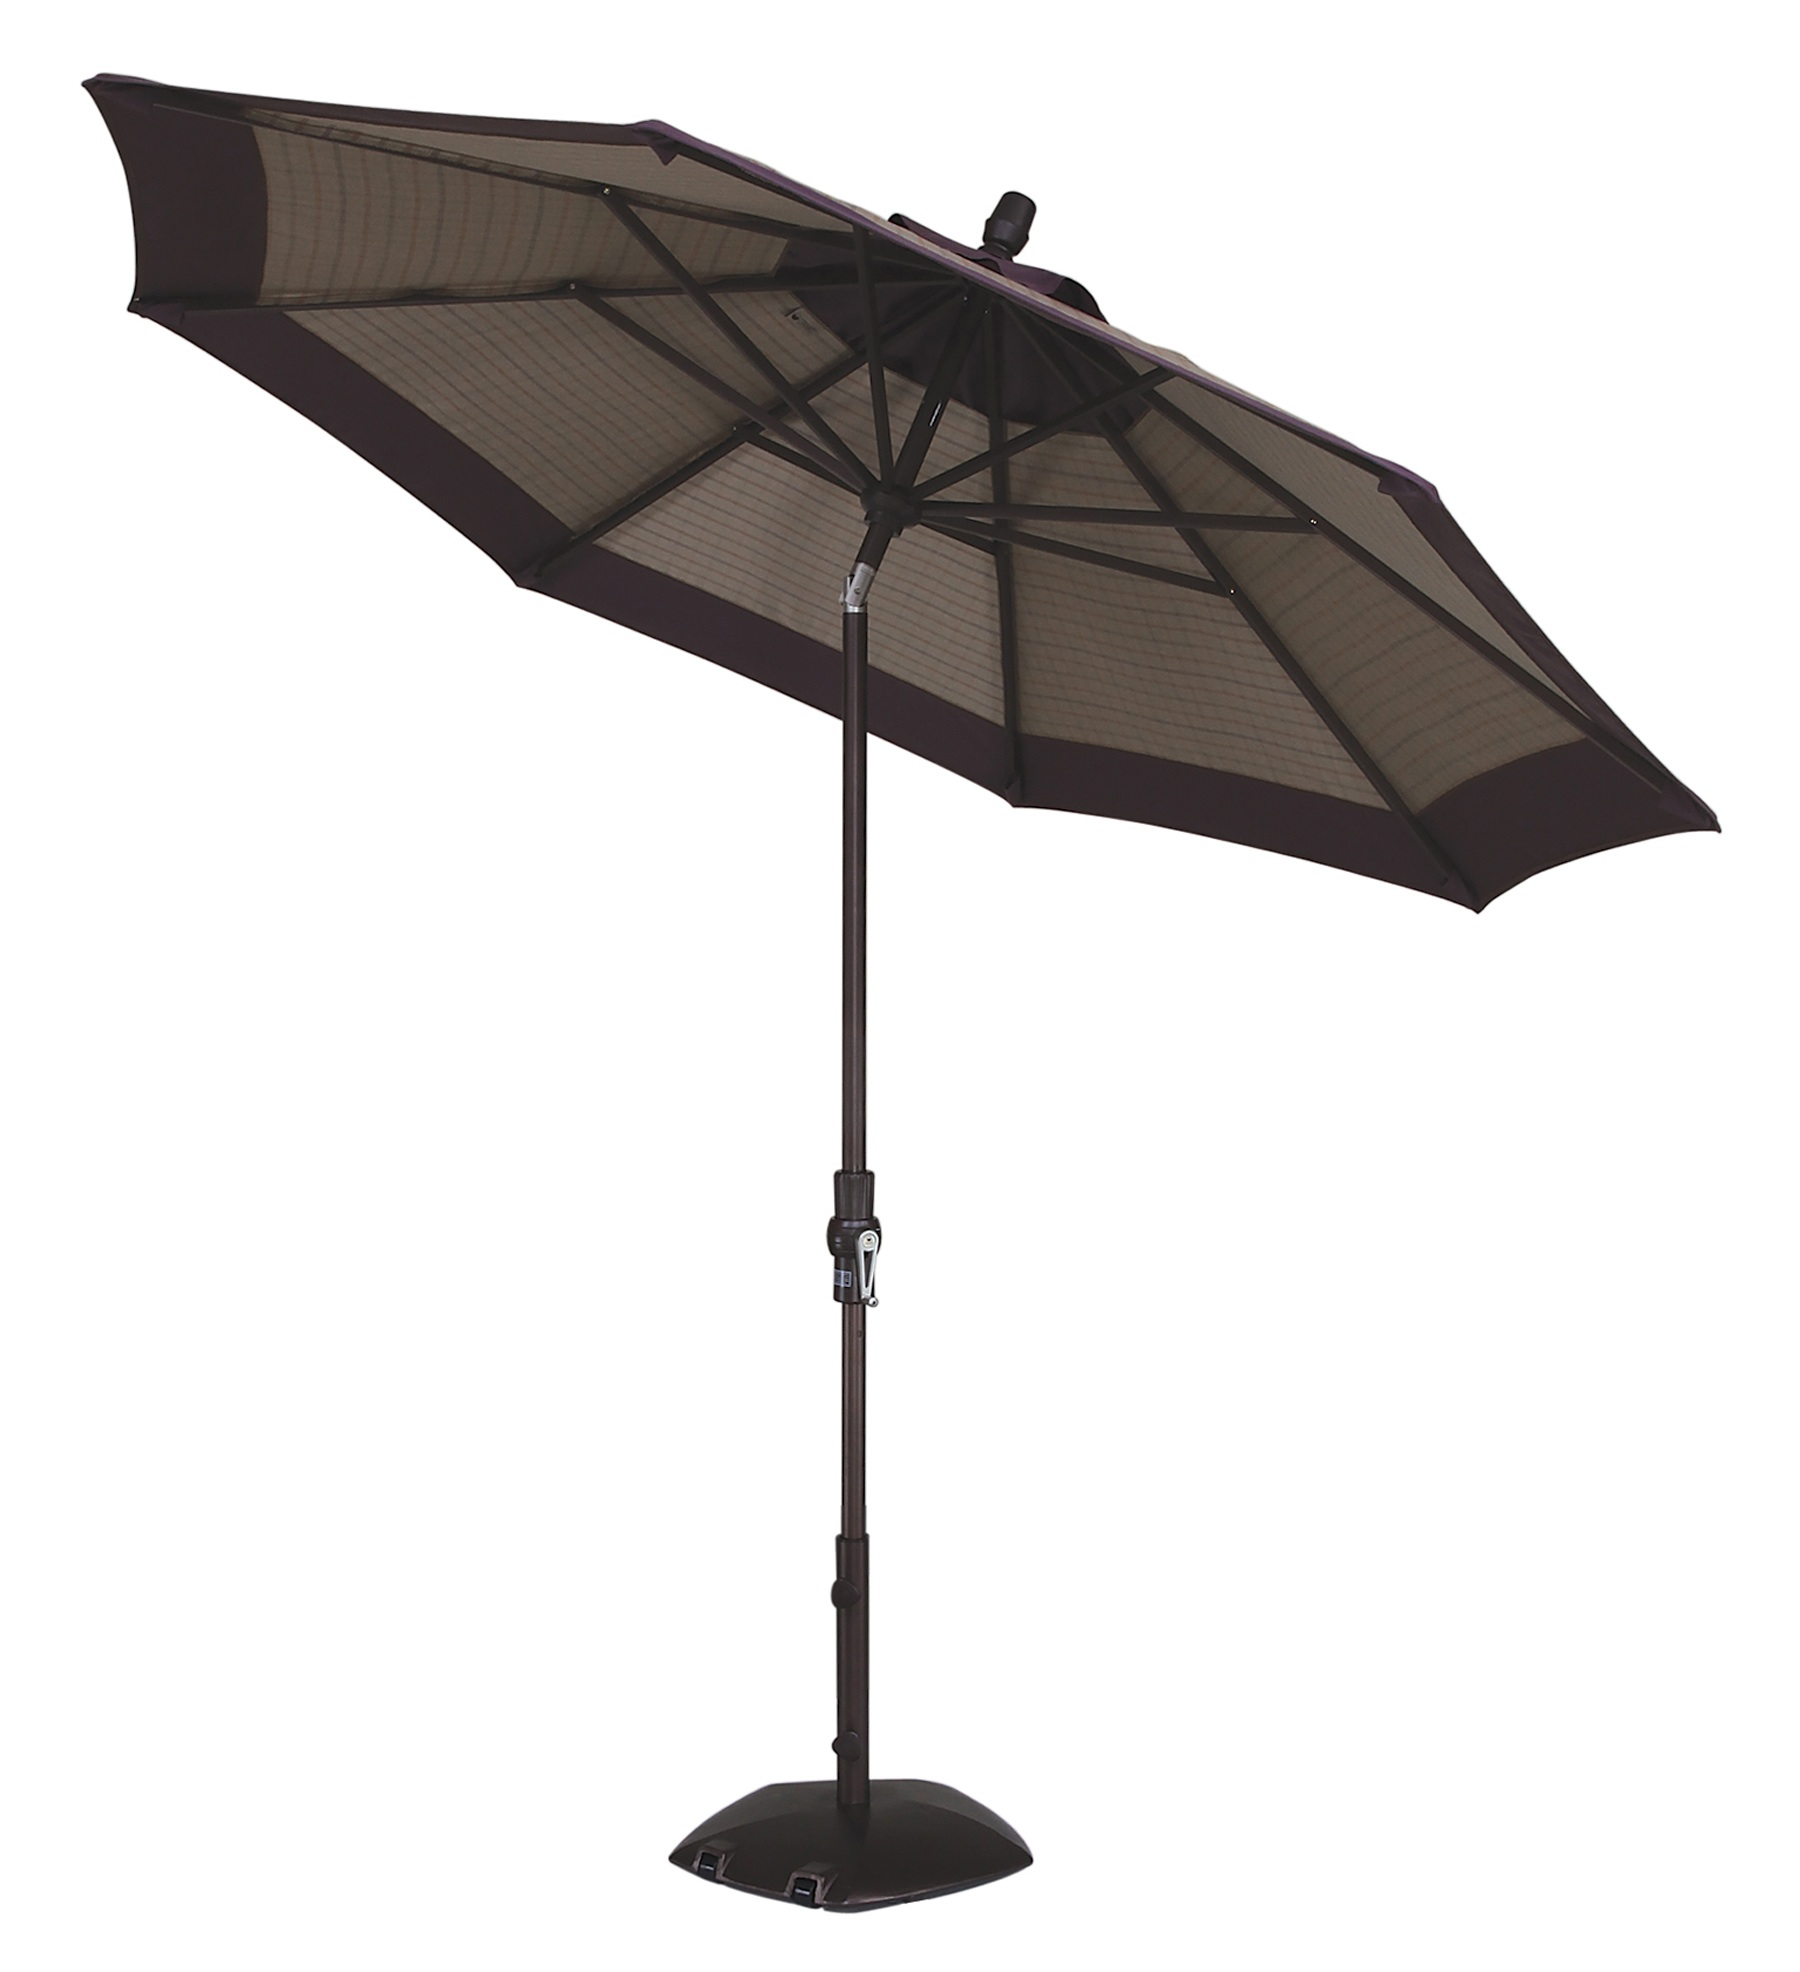 11 Collar Tilt Octagon Market Umbrella